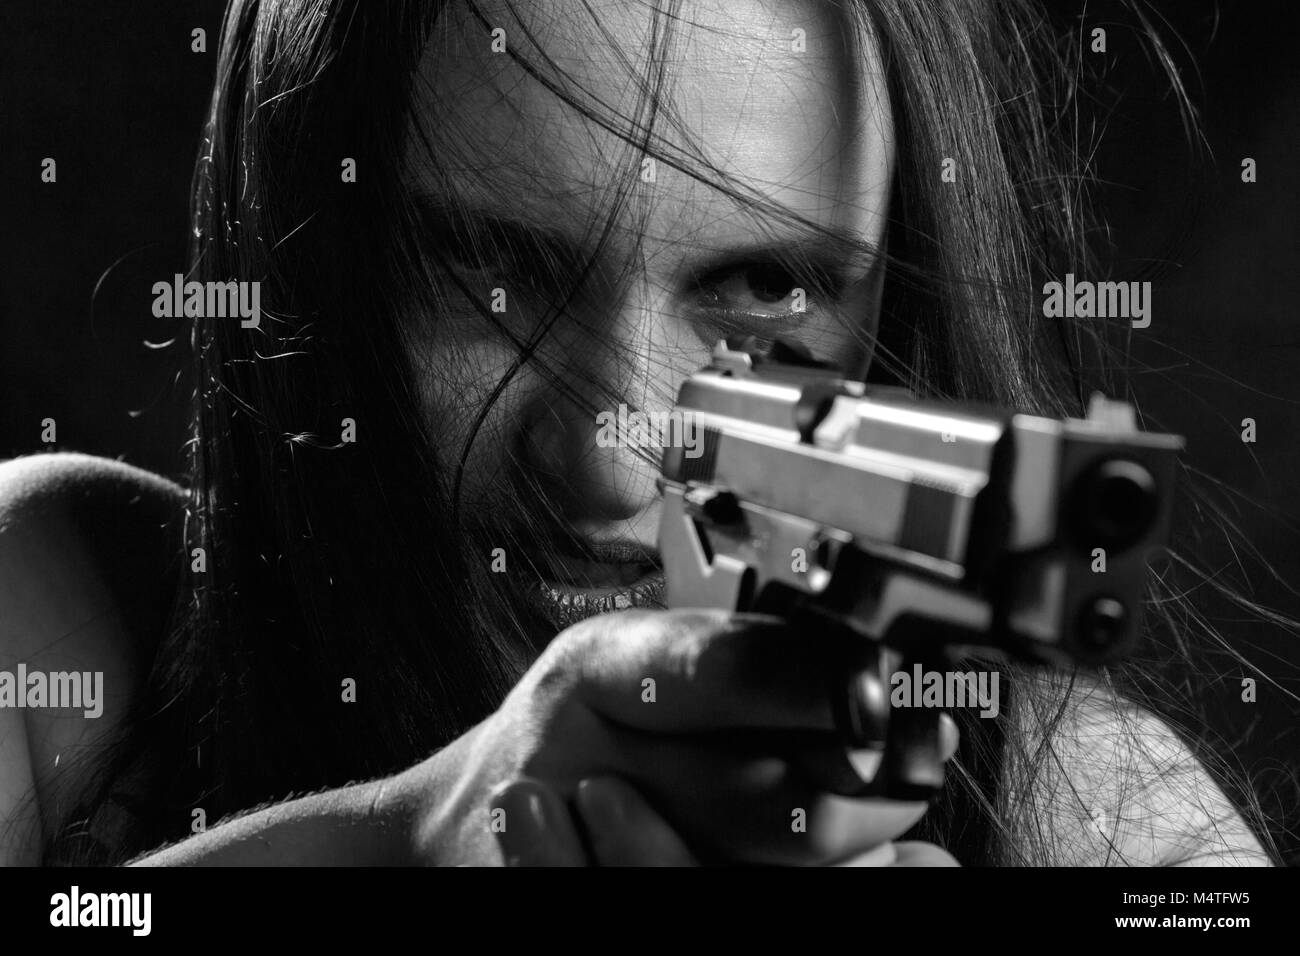 angry young woman with gun aiming on red background, monochrome - Stock Image